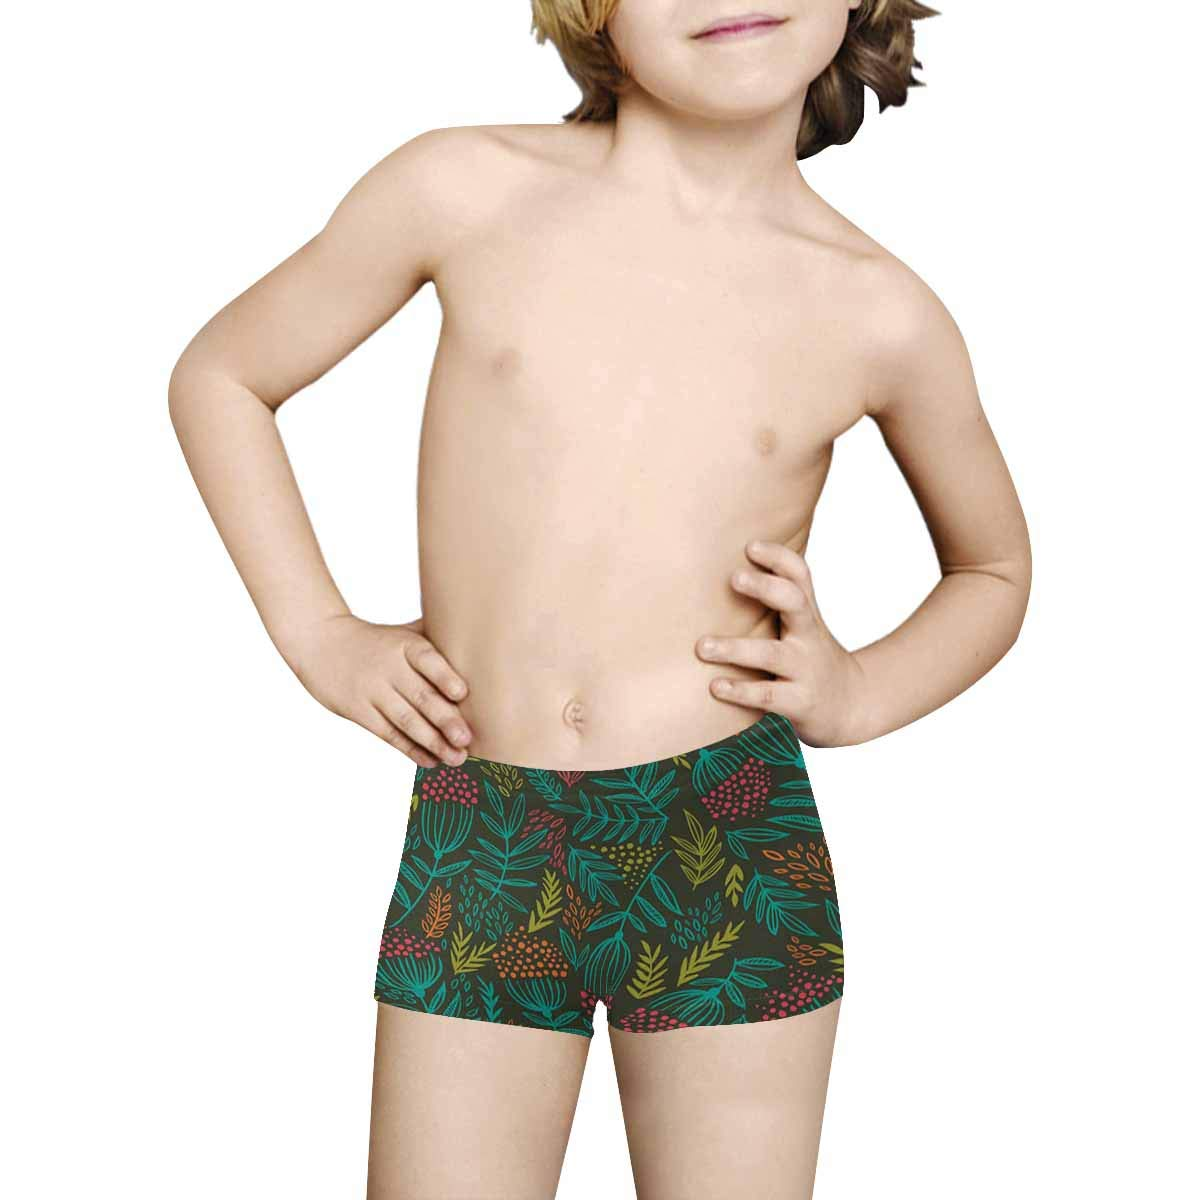 5T-2XL INTERESTPRINT Boys Rowan Branches in Style Boho All Over Print Boxer Briefs